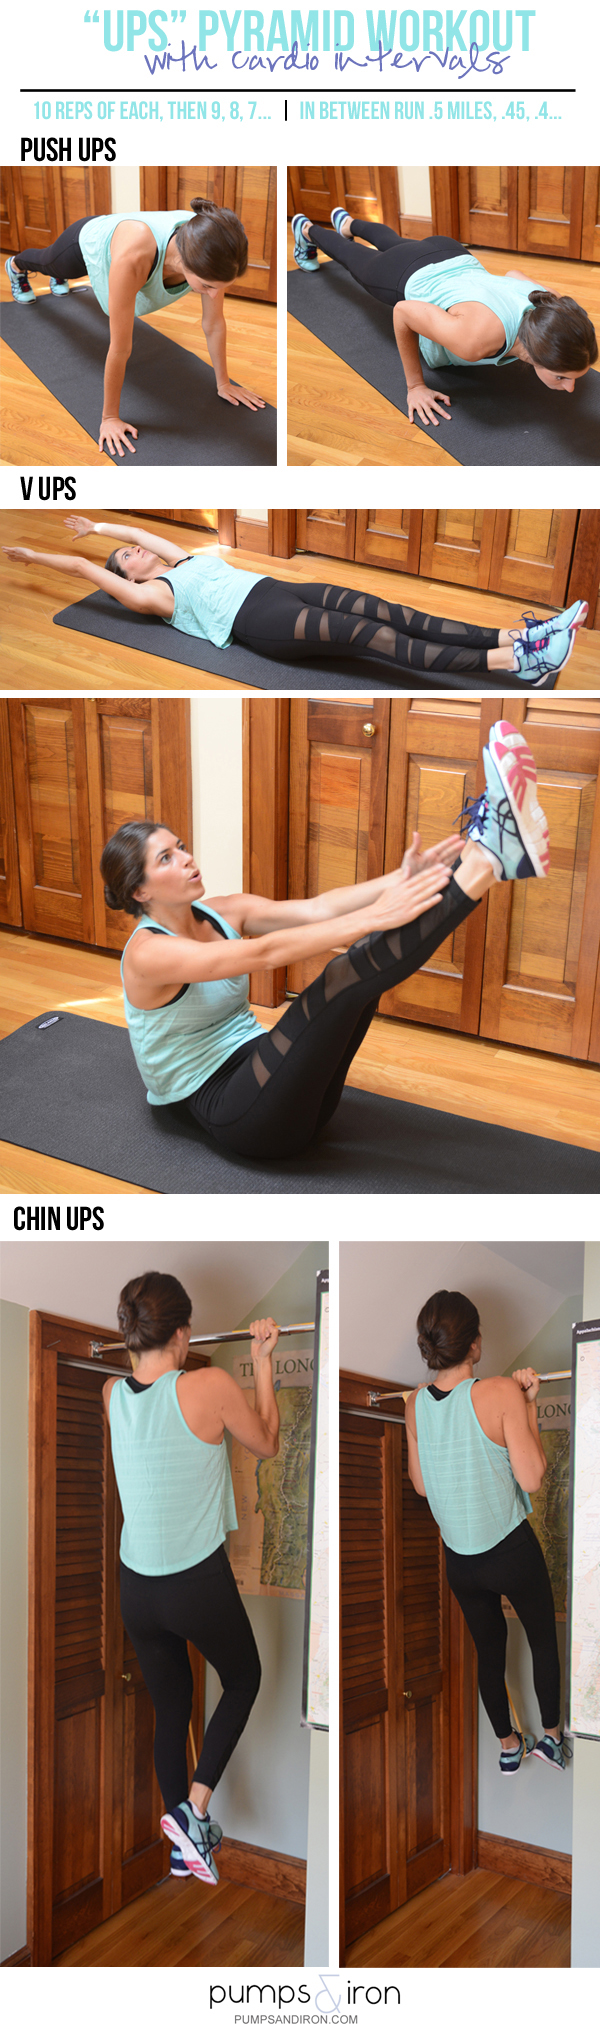 """Ups"" Pyramid Workout with Cardio Intervals on the Treadmill (Push Ups, V Ups & Chin Ups--that's it!)"